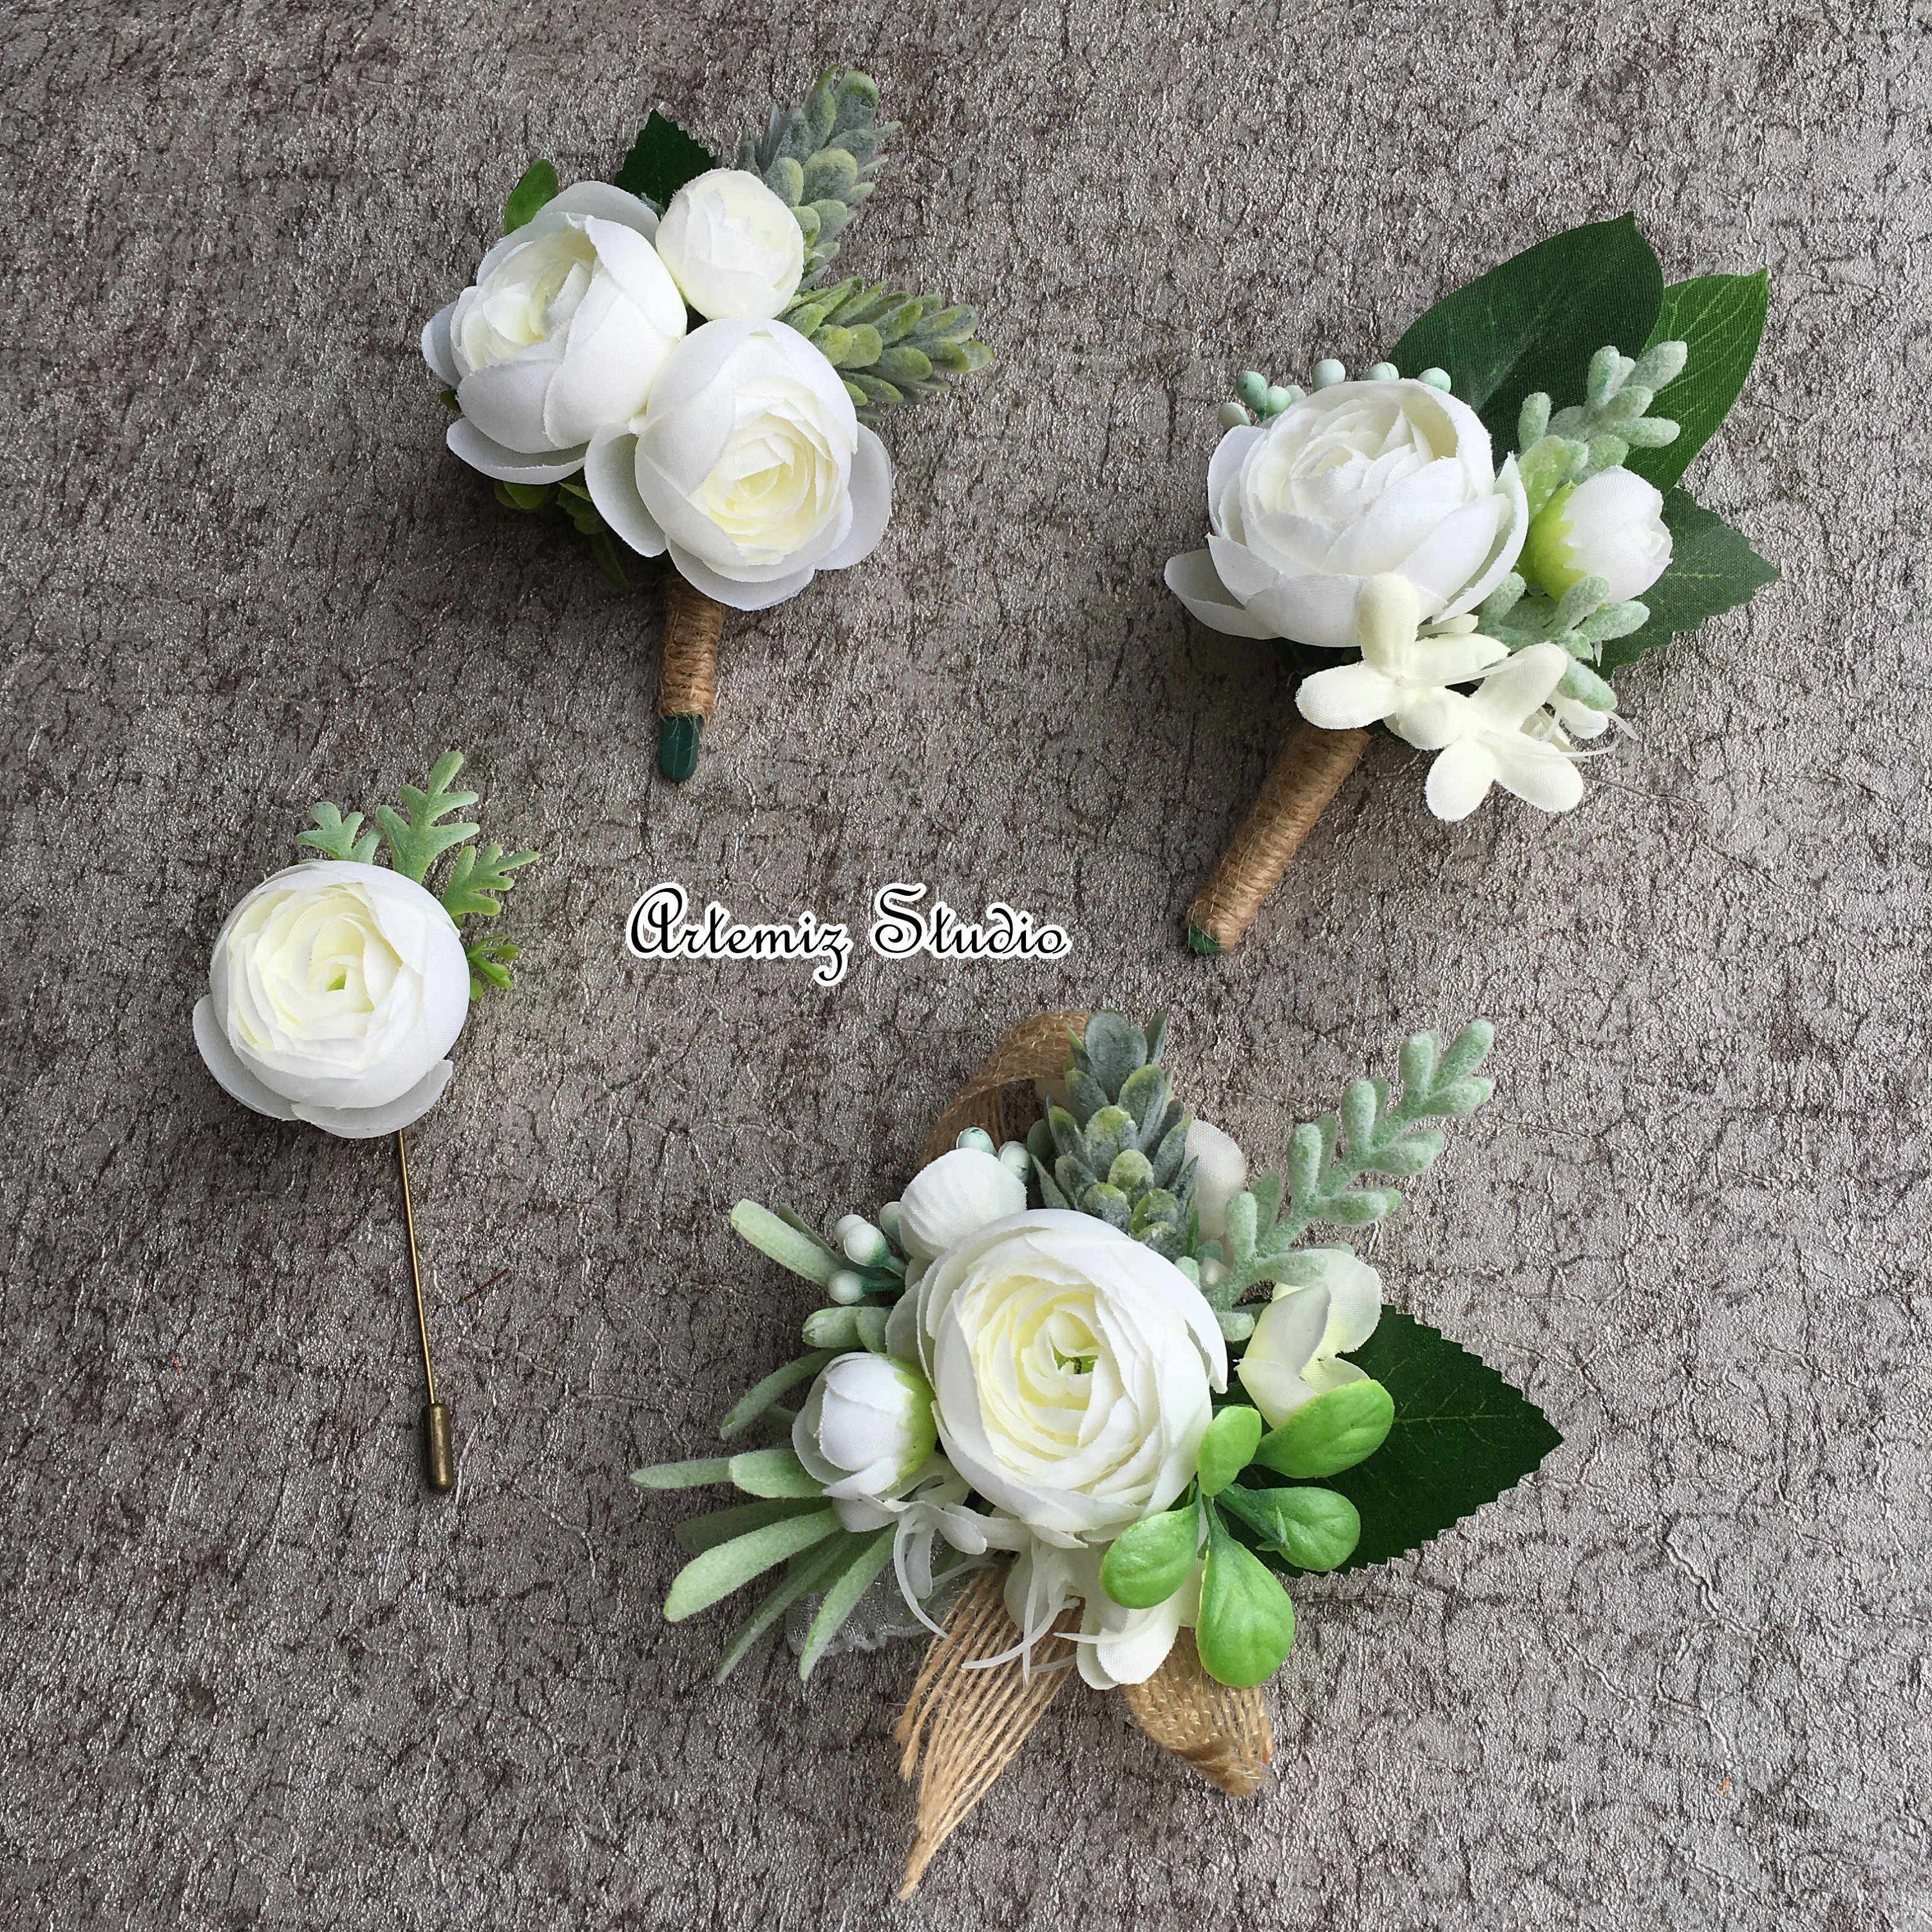 White Green Boutonniere Wrist Corsage Set Rustic Wedding